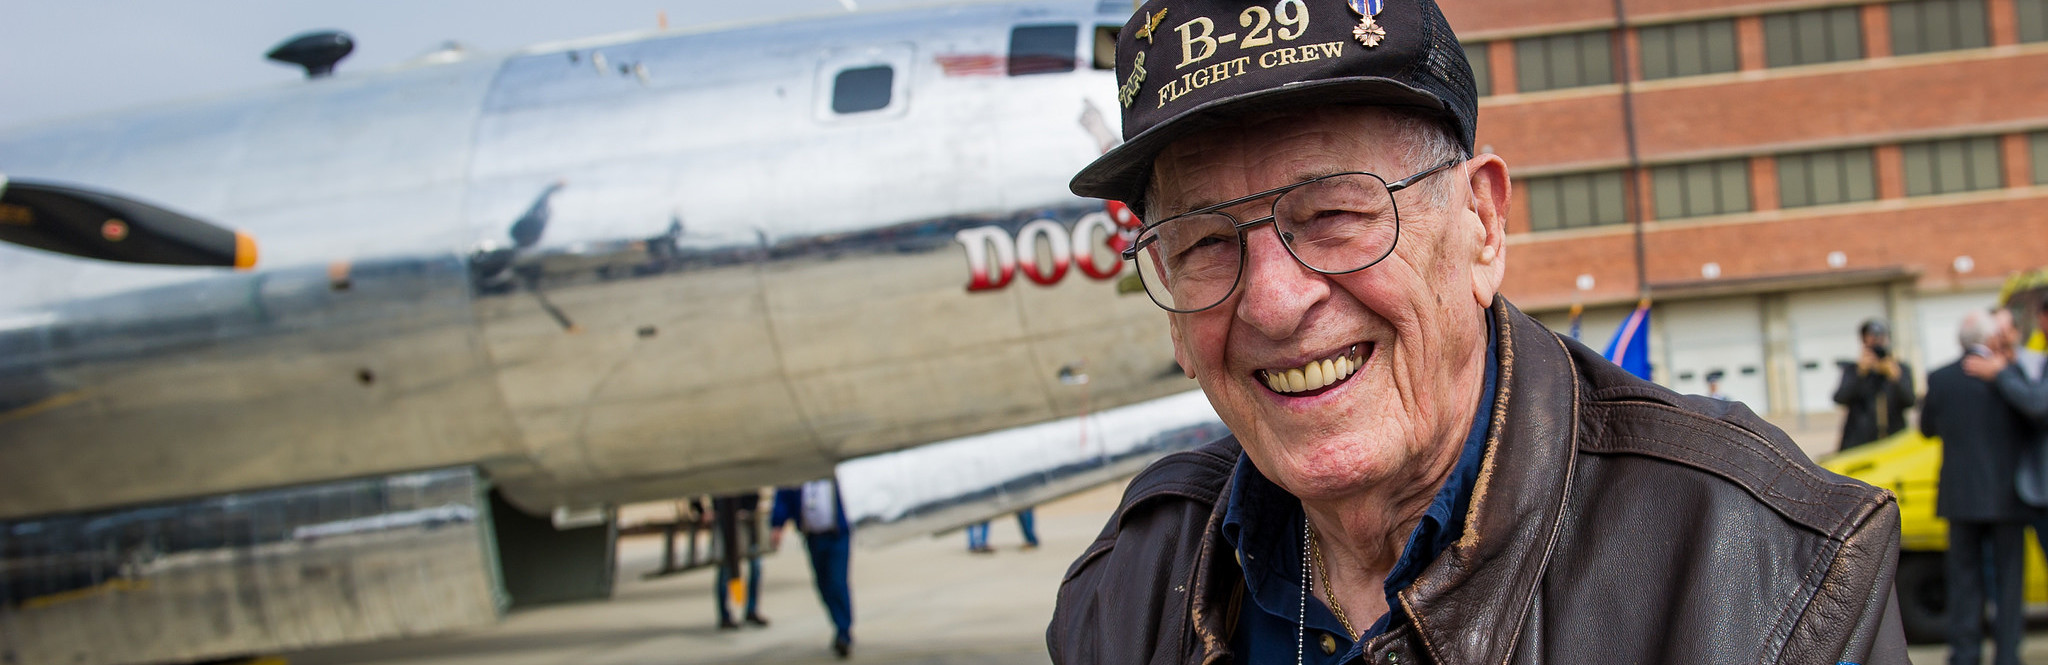 Group to make last AirVenture appearance before B-29 is ready for flight